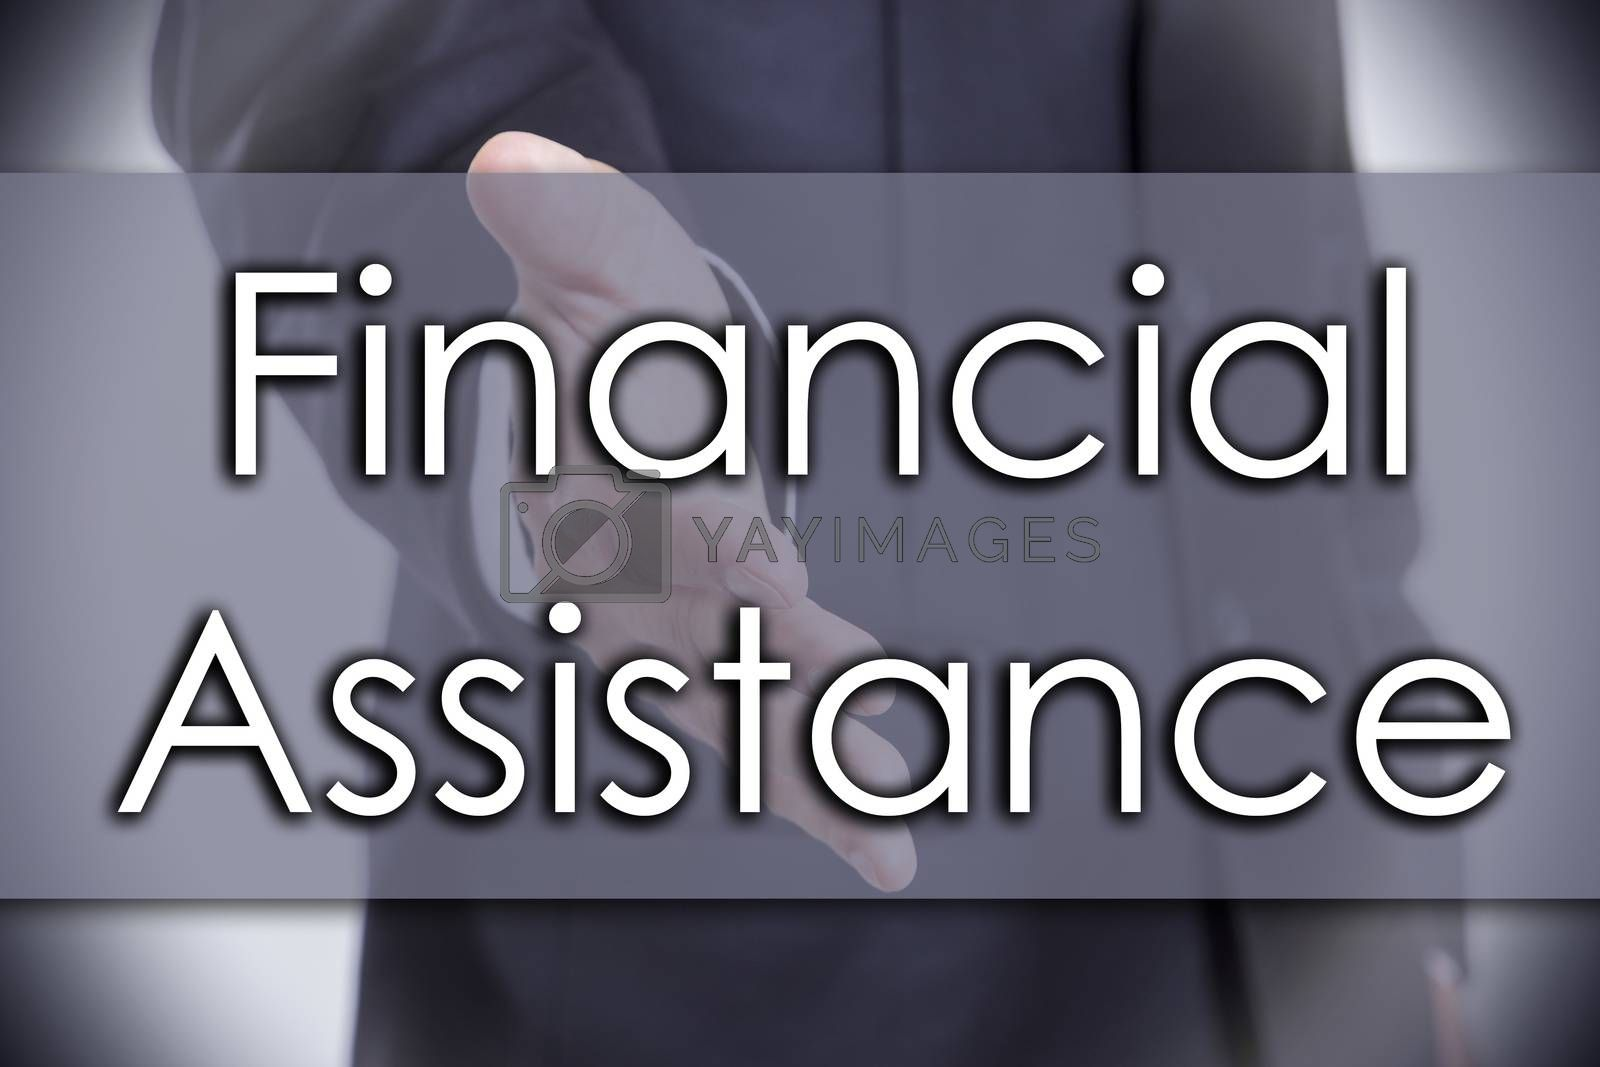 Financial Assistance - business concept with text by zsirosistvan